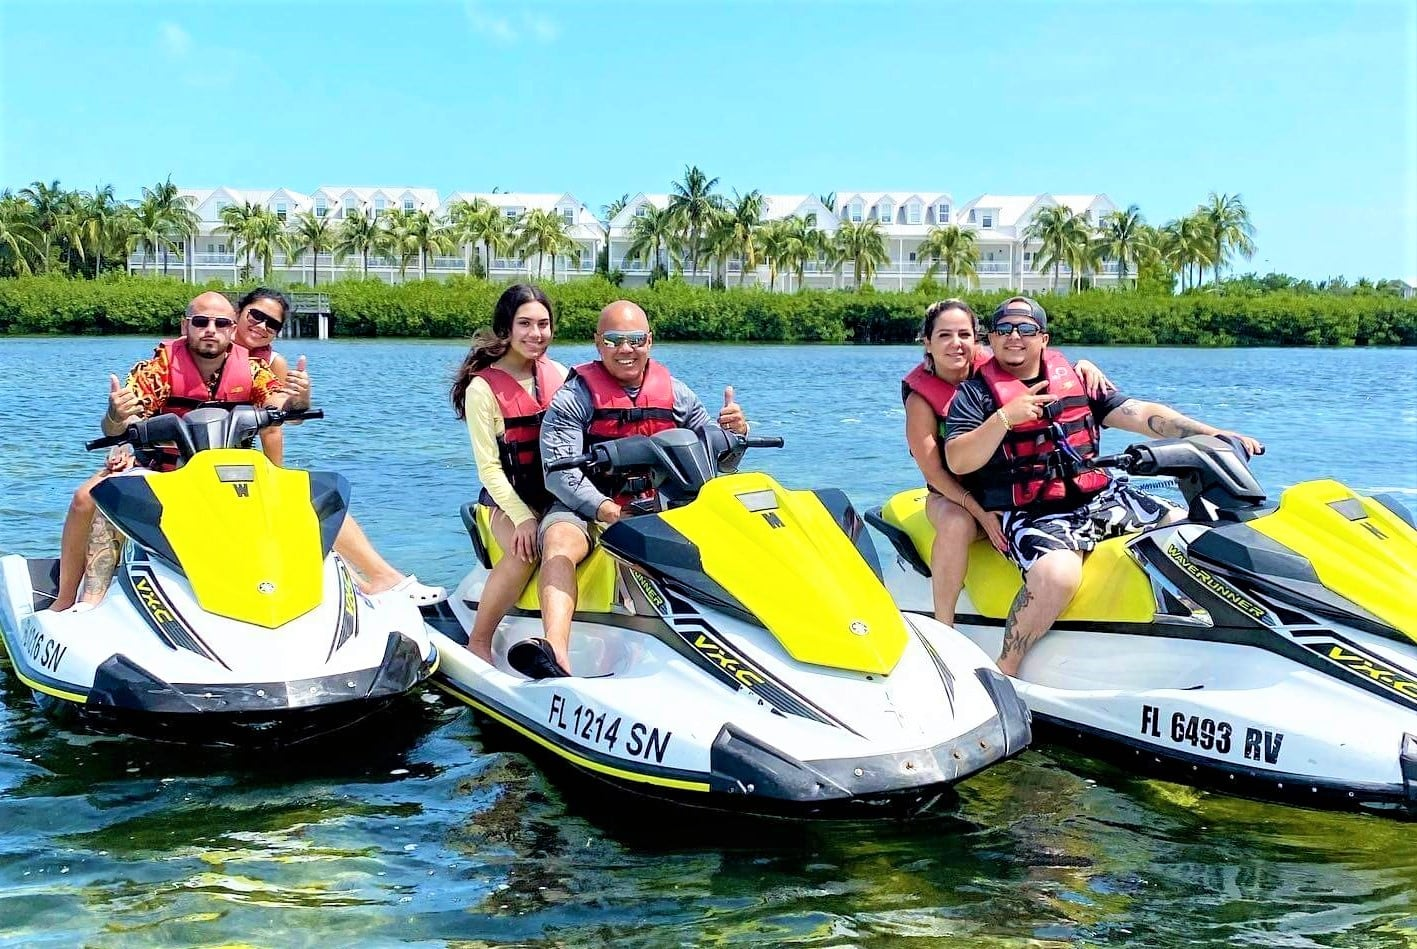 jetski tours and rentals in key west